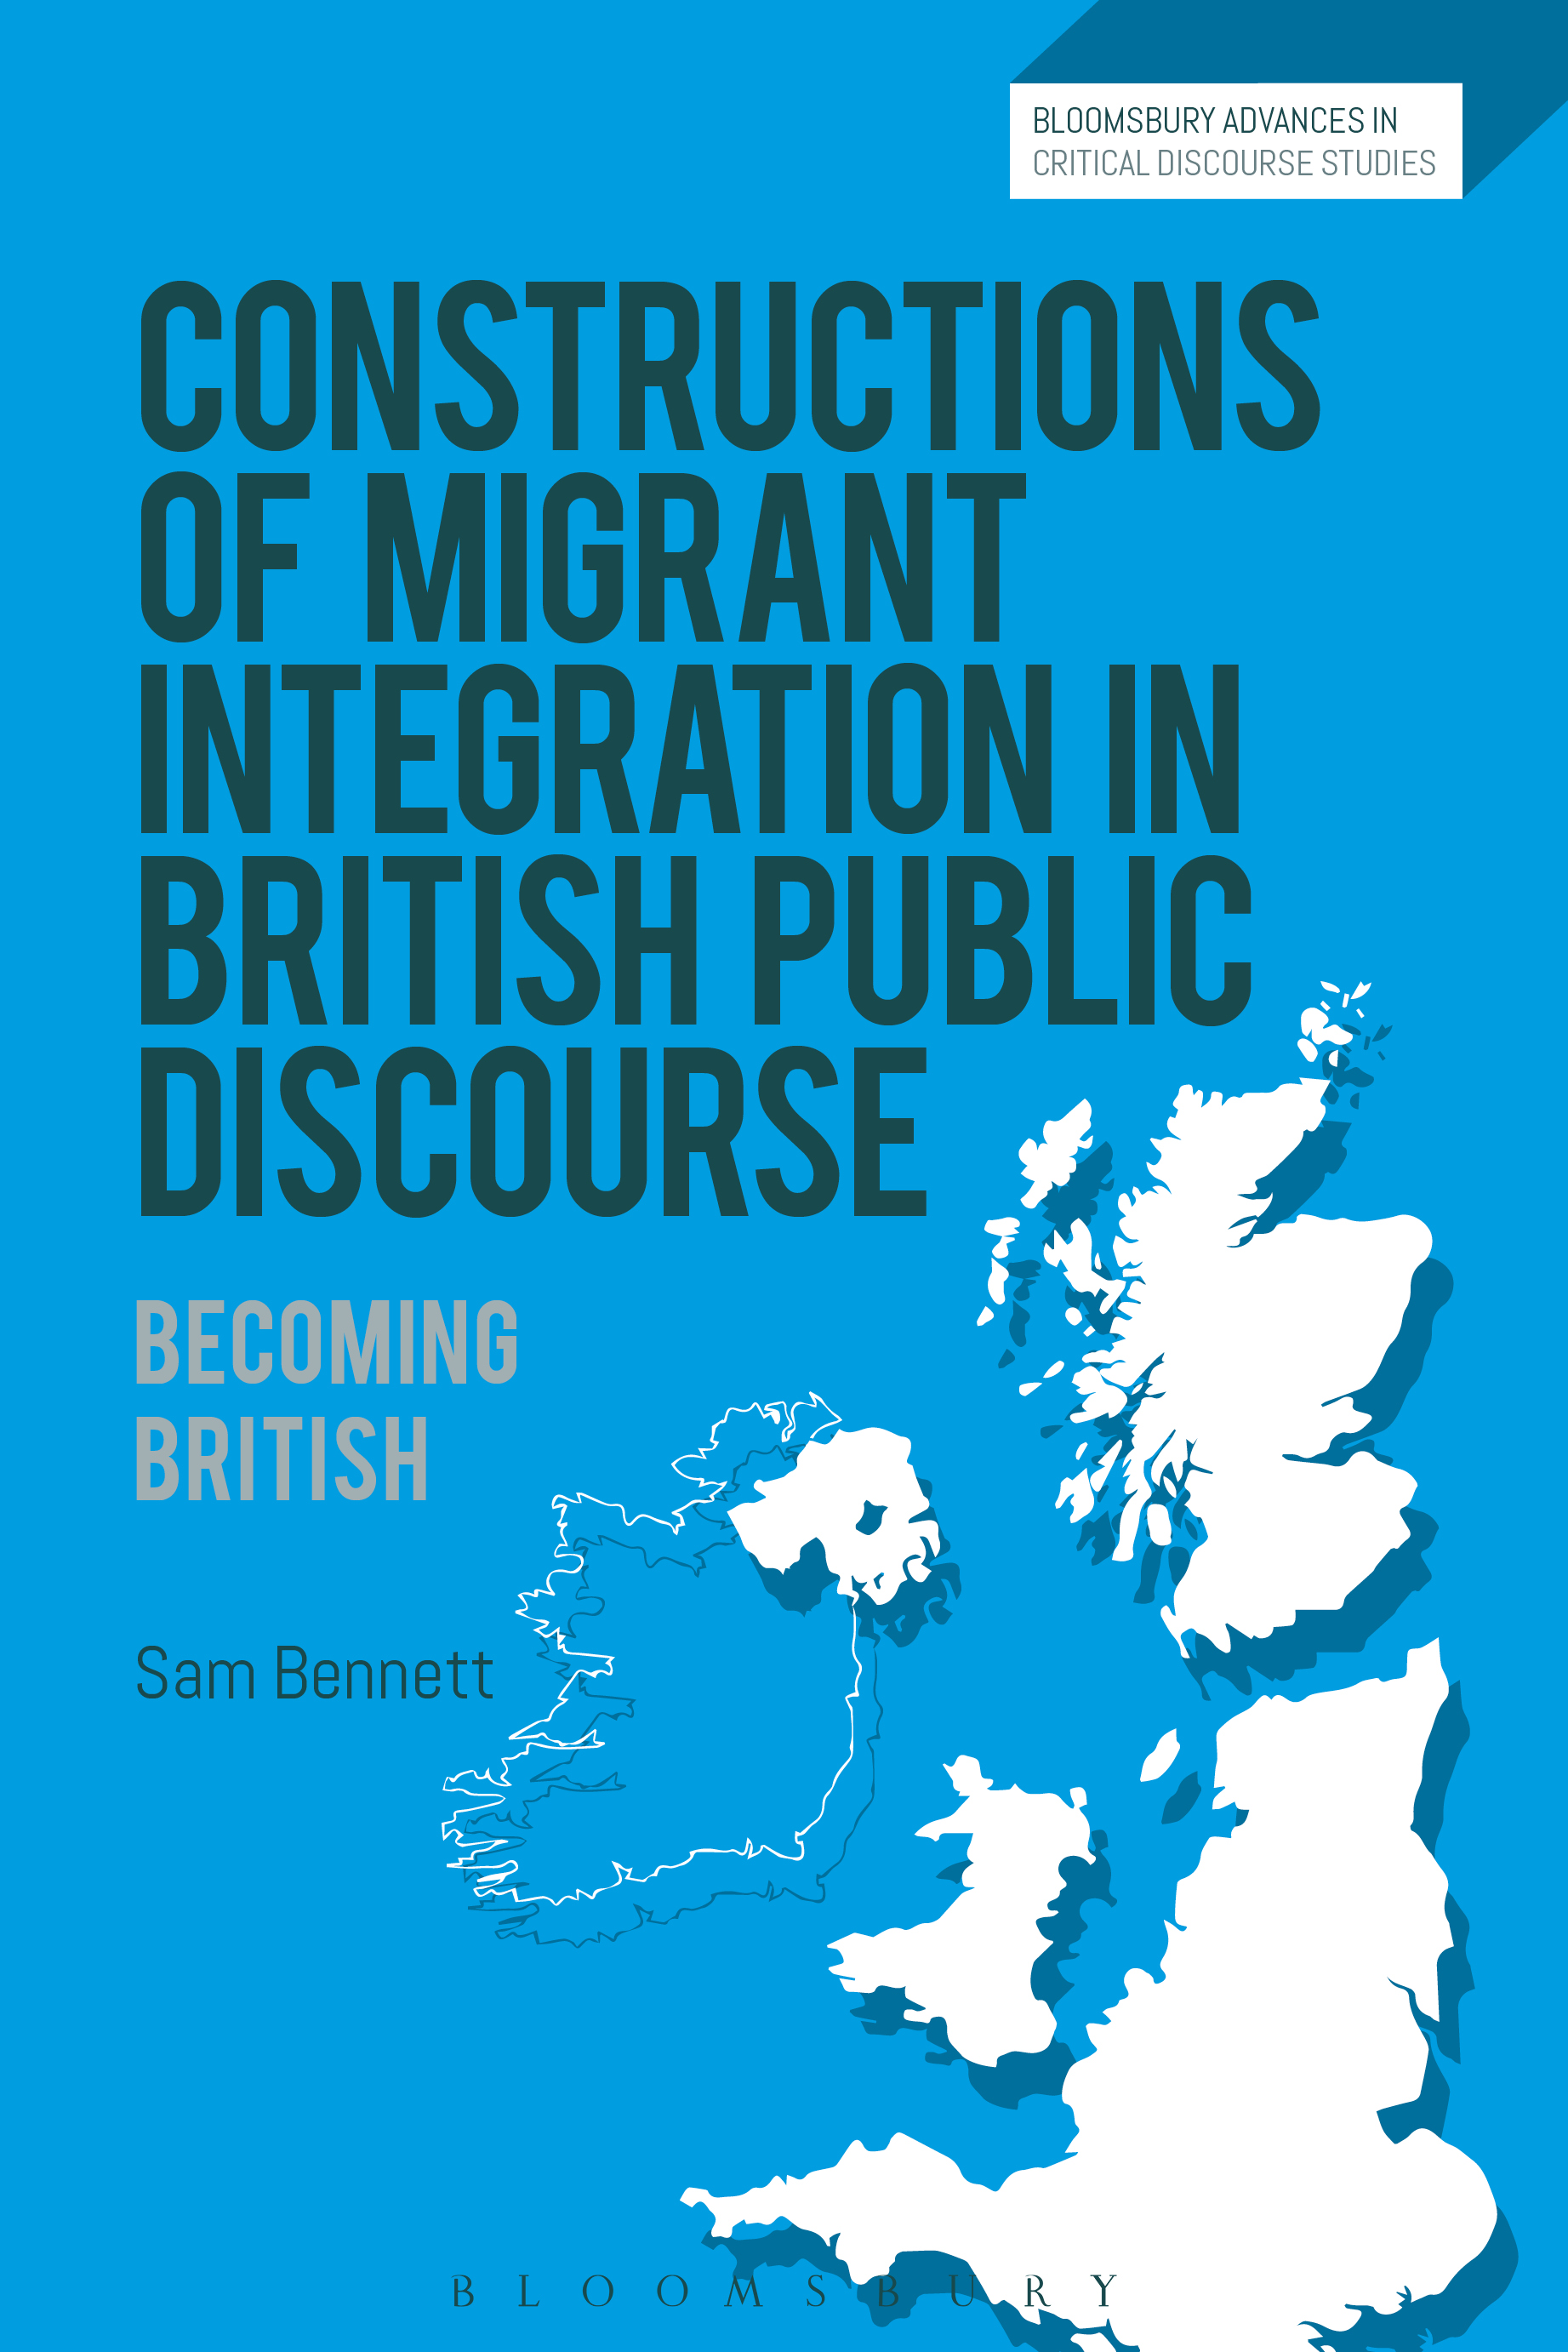 1 - Constructions of Migrant Integration